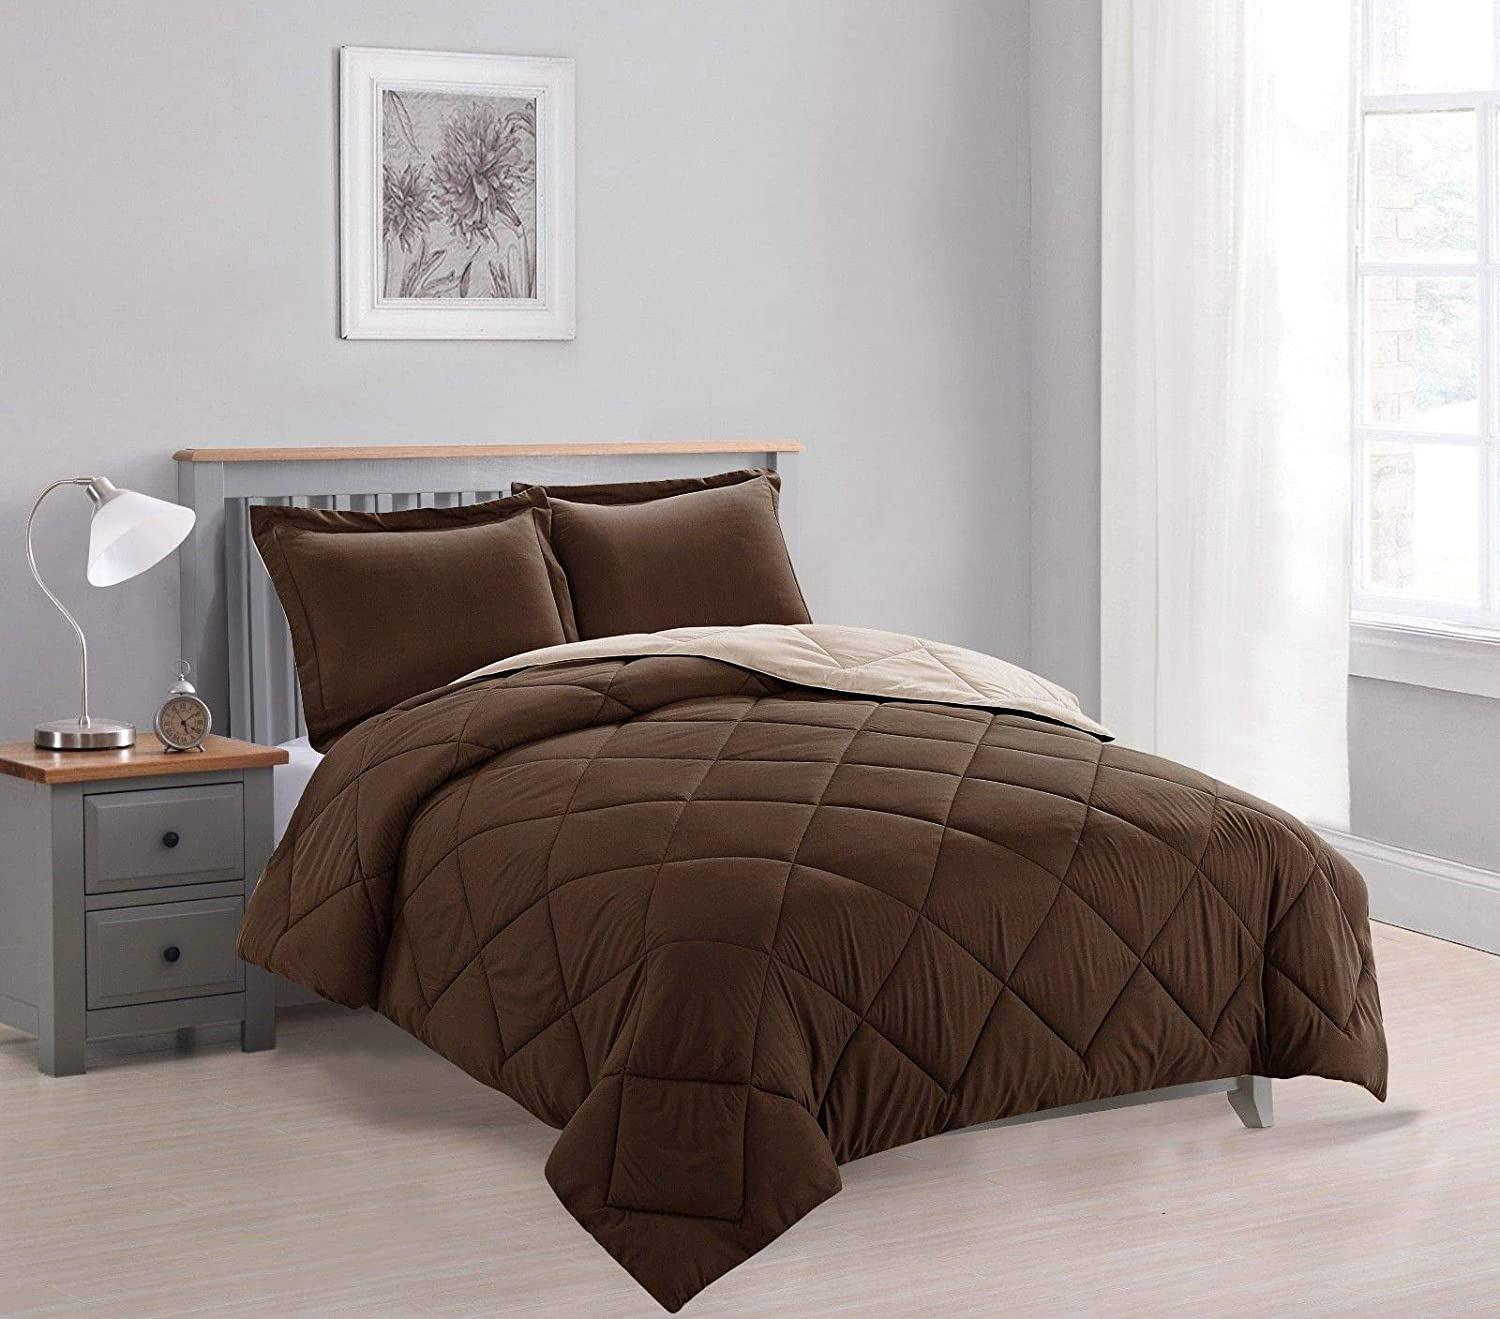 Dayton 3-Piece Reversible Down Alternative Solid Comforter Set - Brown & Taupe